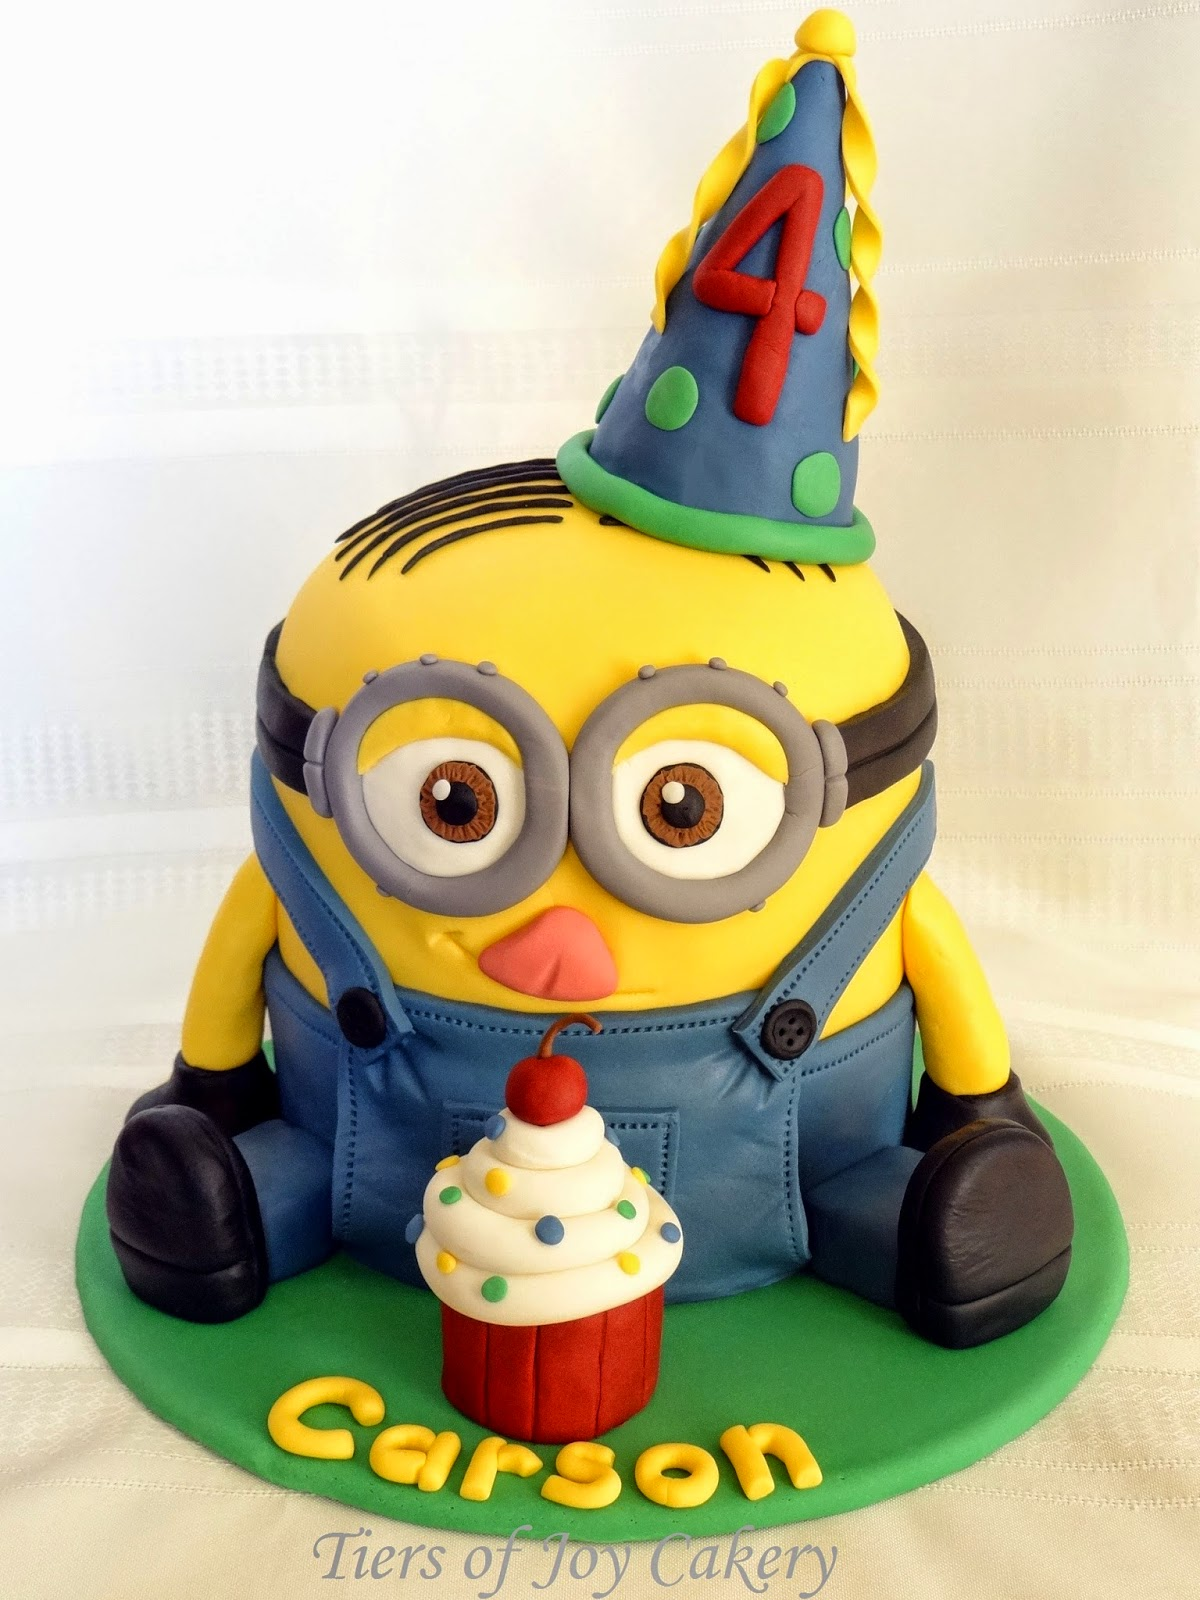 Tiers of Joy Cakery Despicable Me Minion Dave Cake